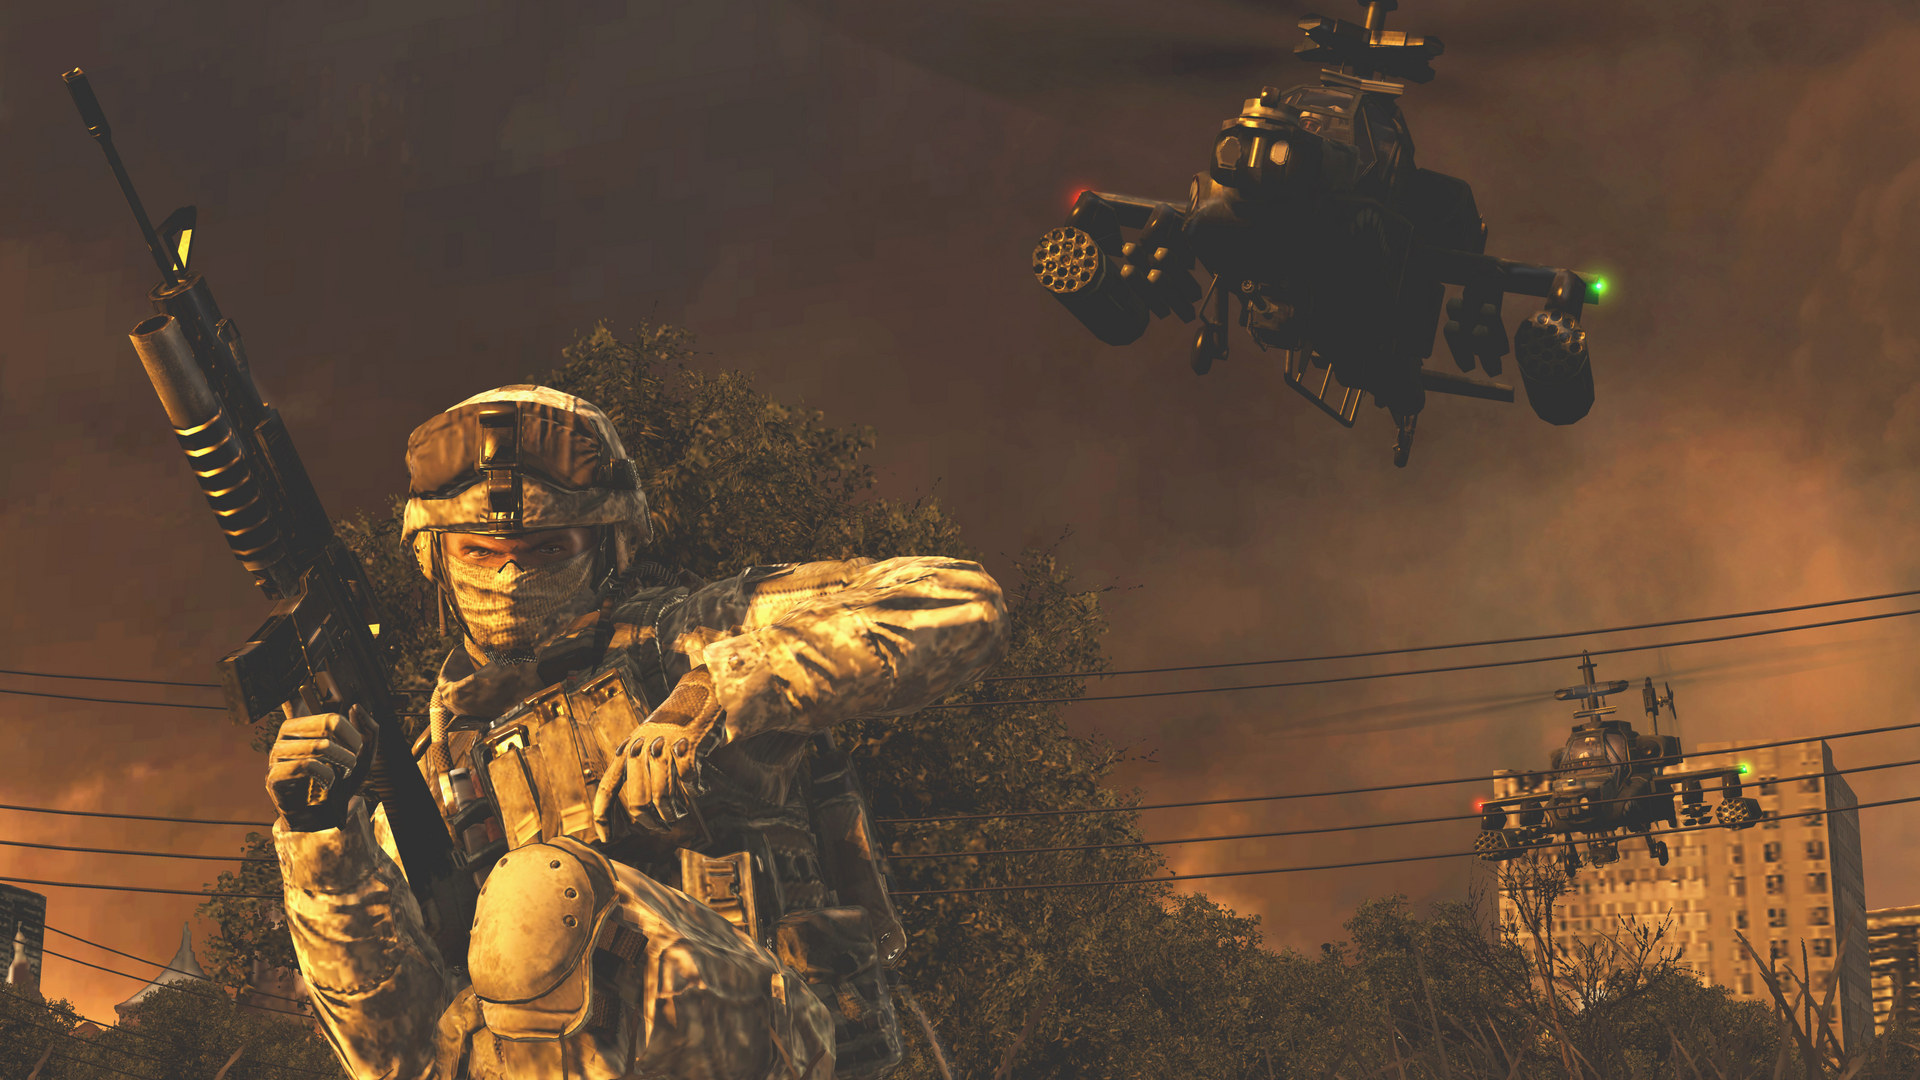 People are convinced they can hear 'Modern Warfare 4' in this video